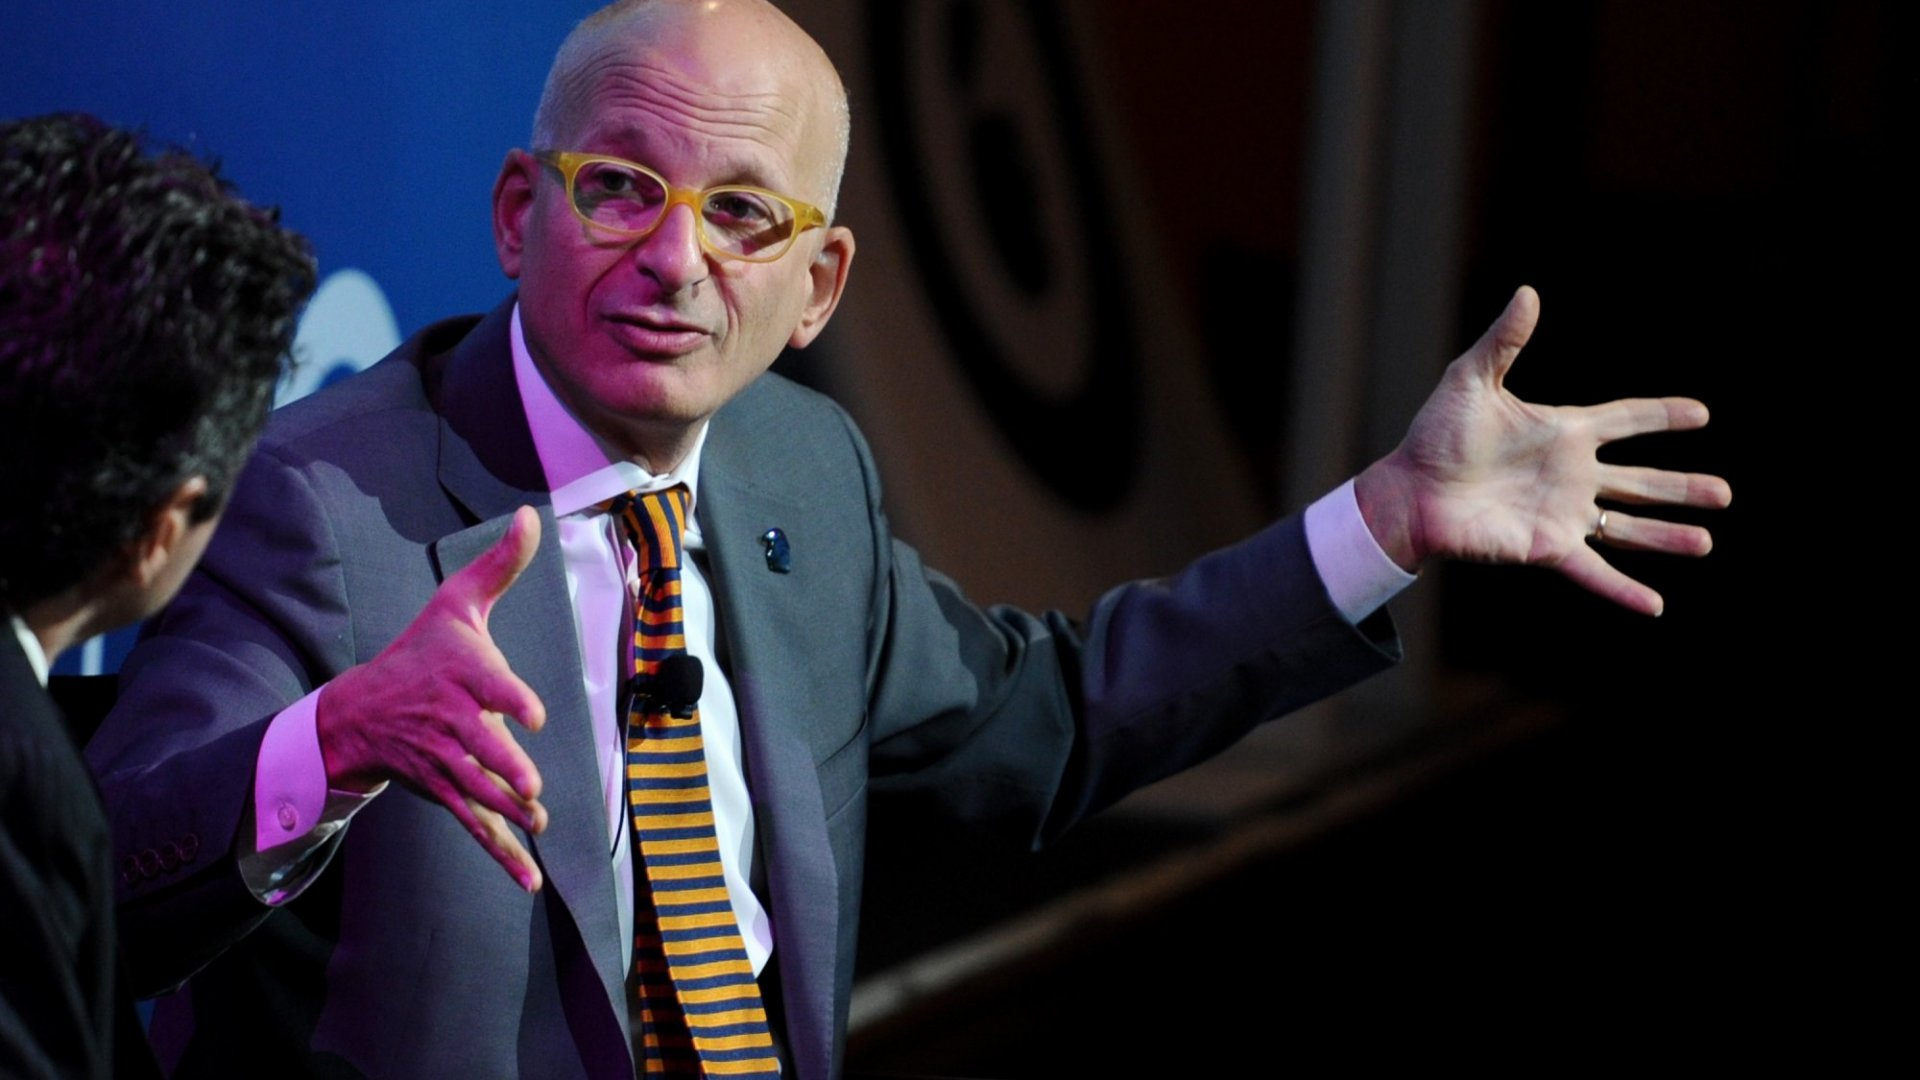 The Future of Work With Seth Godin. HR Leaders and Managers Will Not Like This